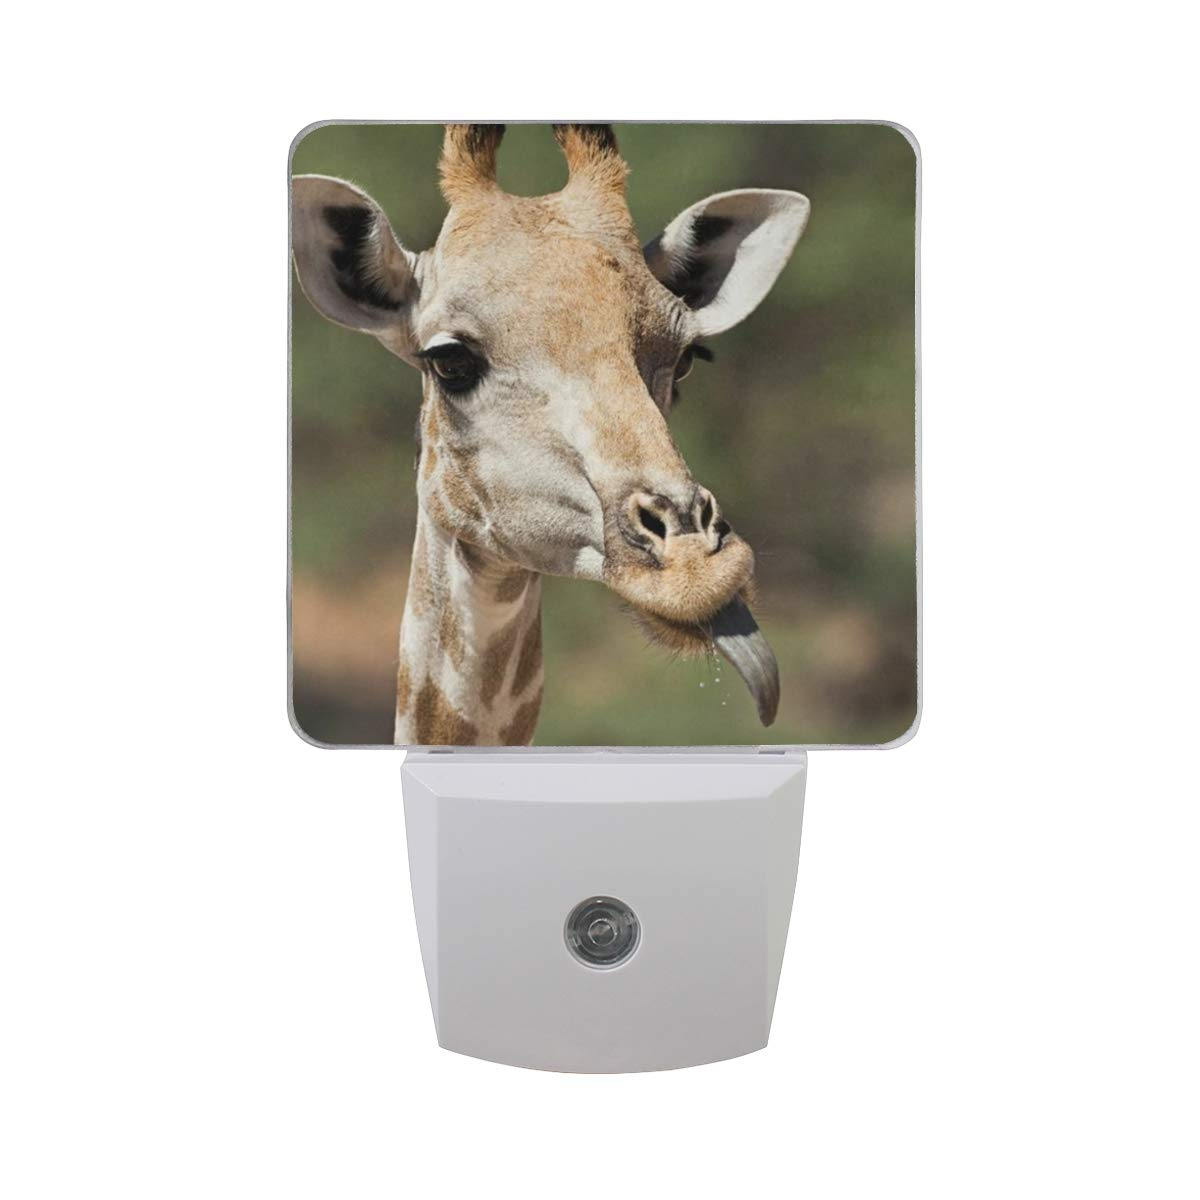 Night Light What Color is Giraffe's Tongue Led Light Lamp for Hallway, Kitchen, Bathroom, Bedroom, Stairs, DaylightWhite, Bedroom, Compact